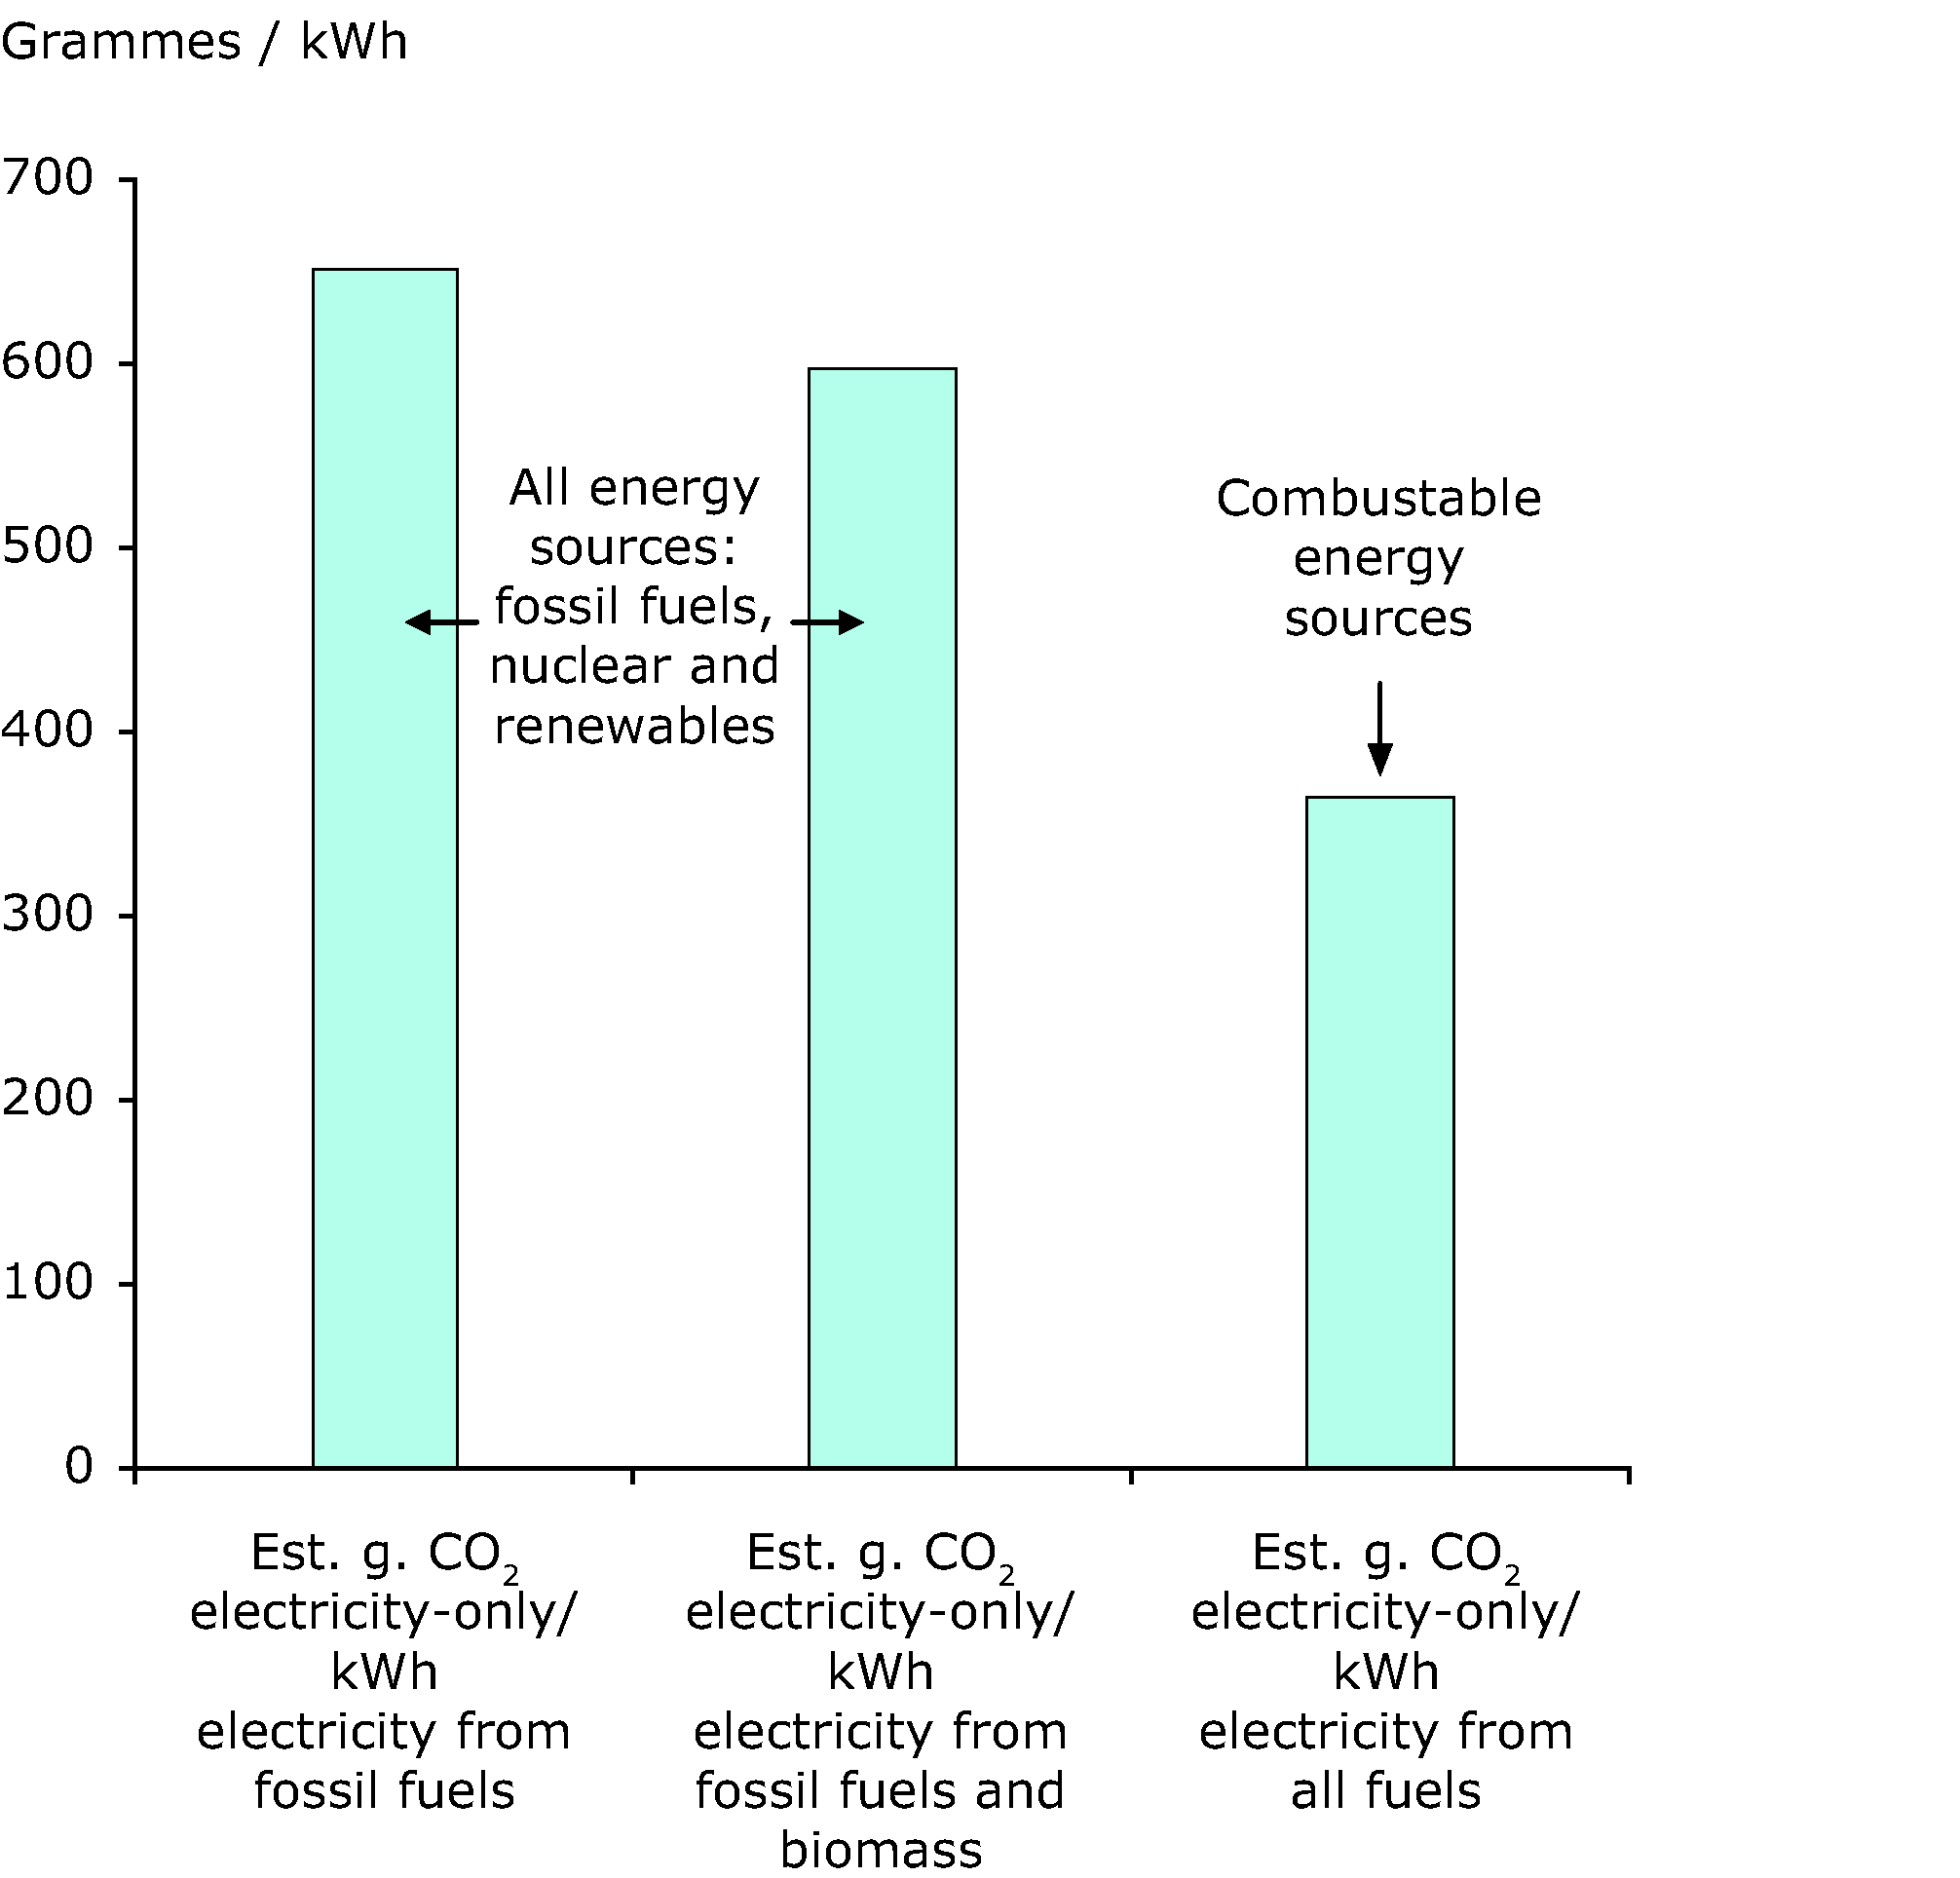 Estimated CO2 emission factors for public electricity production in EU-27, 2008